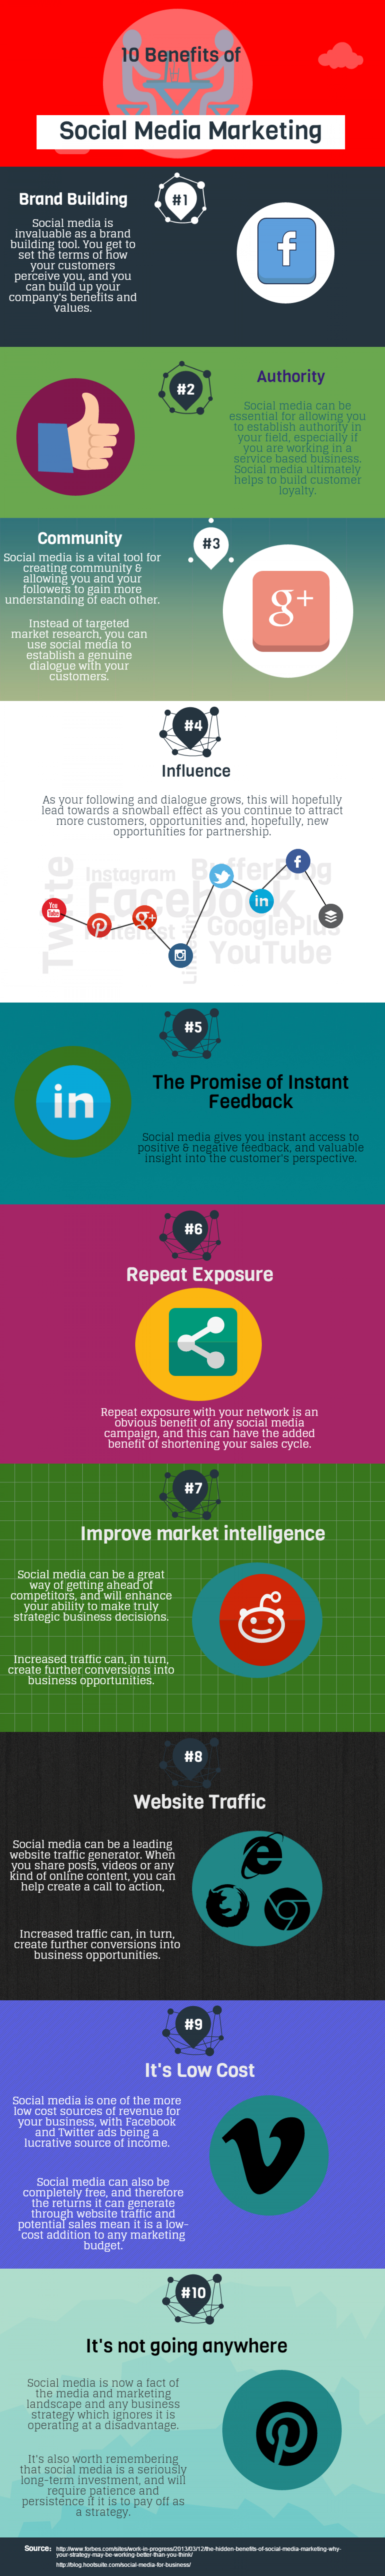 10 benefits of a social media campaign Infographic